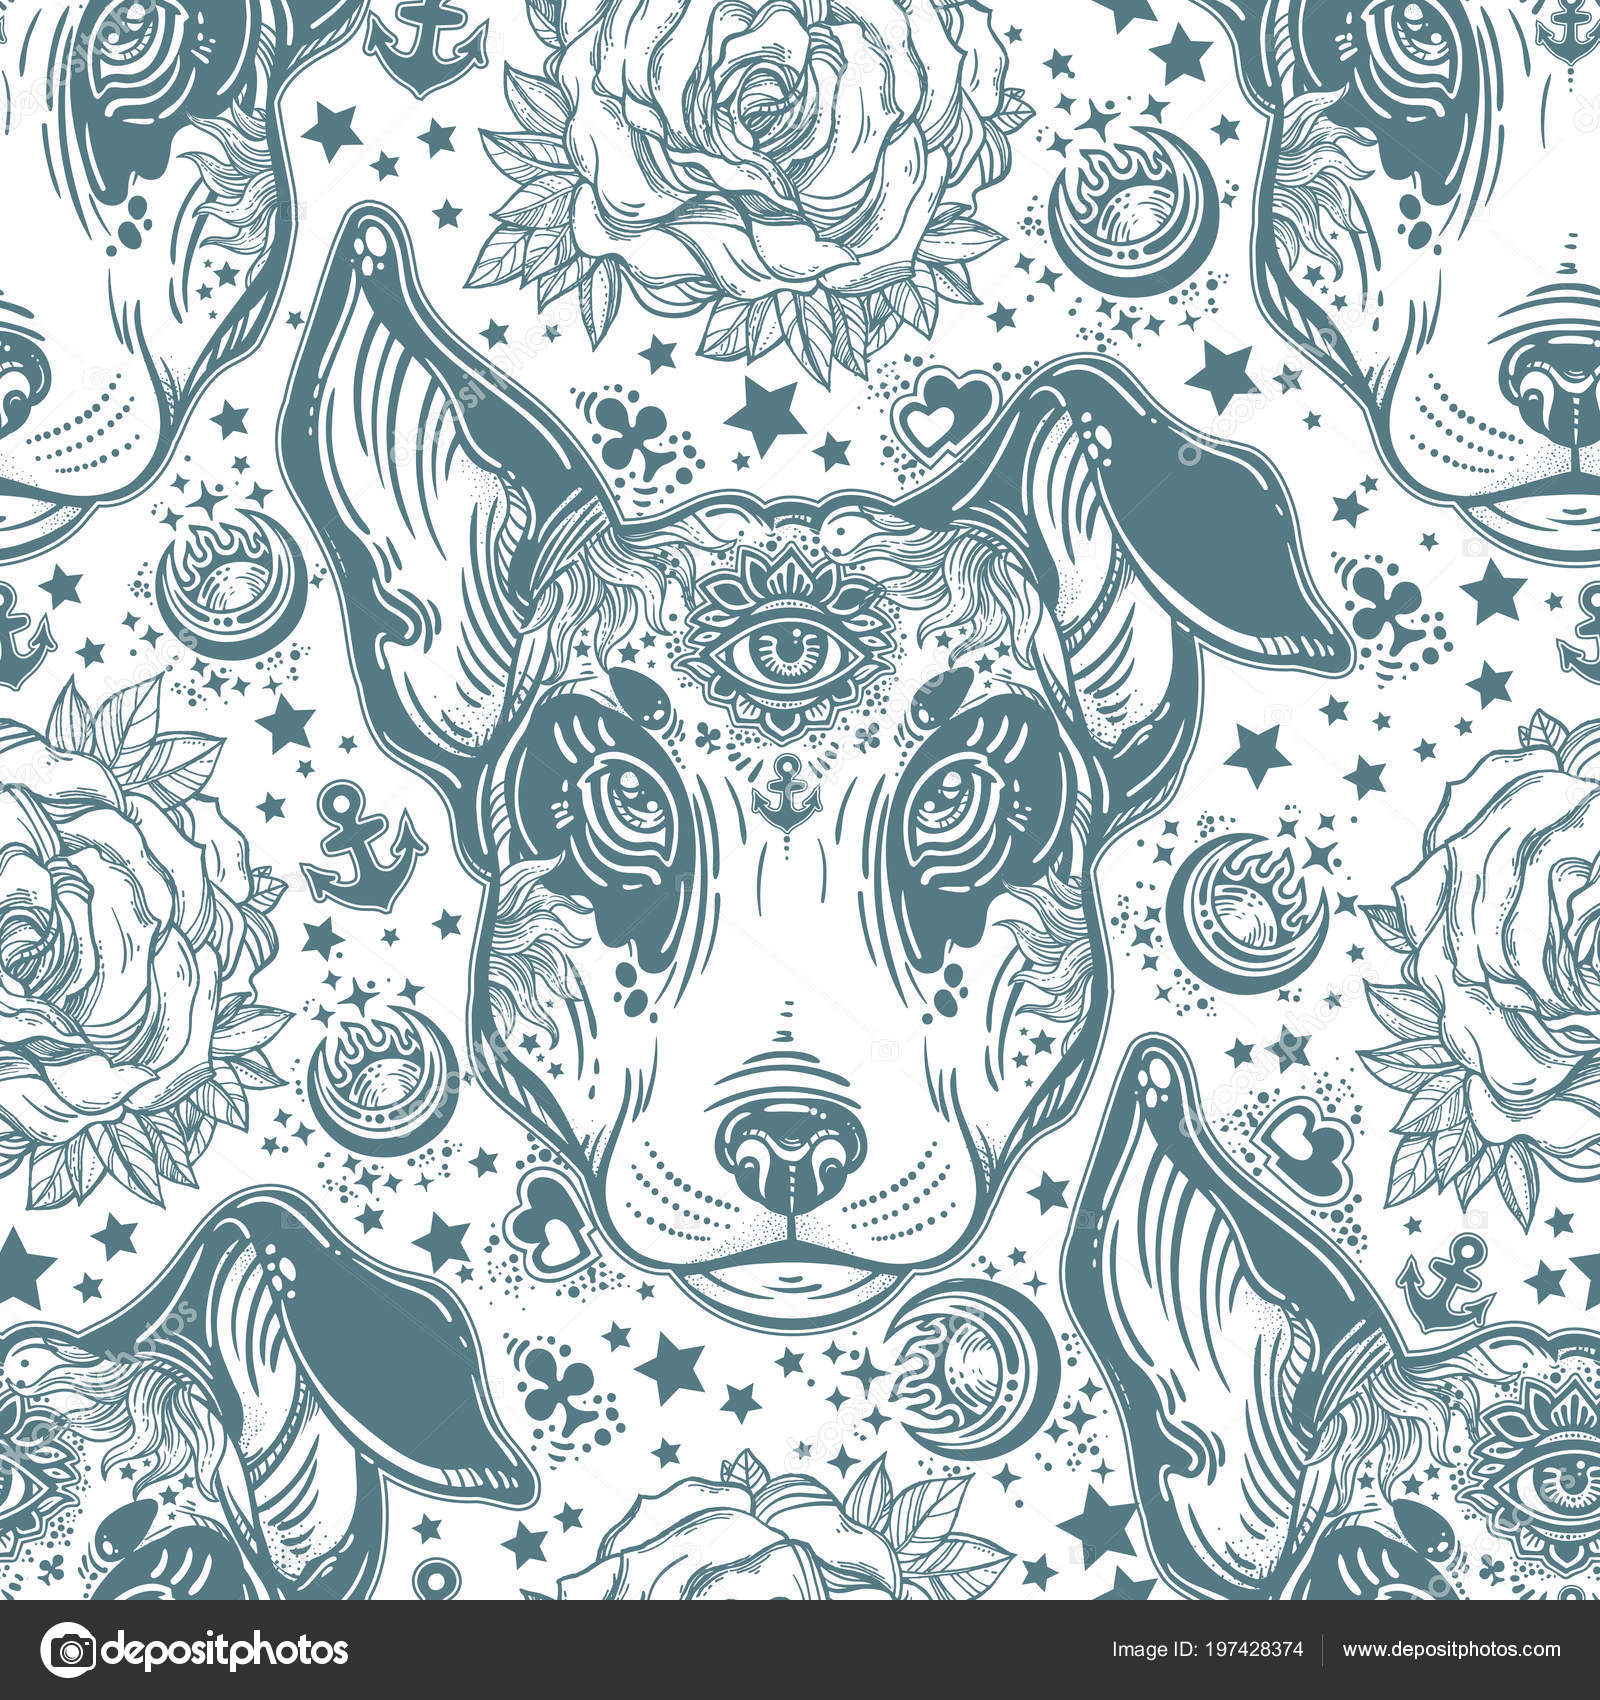 Vintage Style Traditional Tattoo Flash Terrier Dog Seamless Doodle